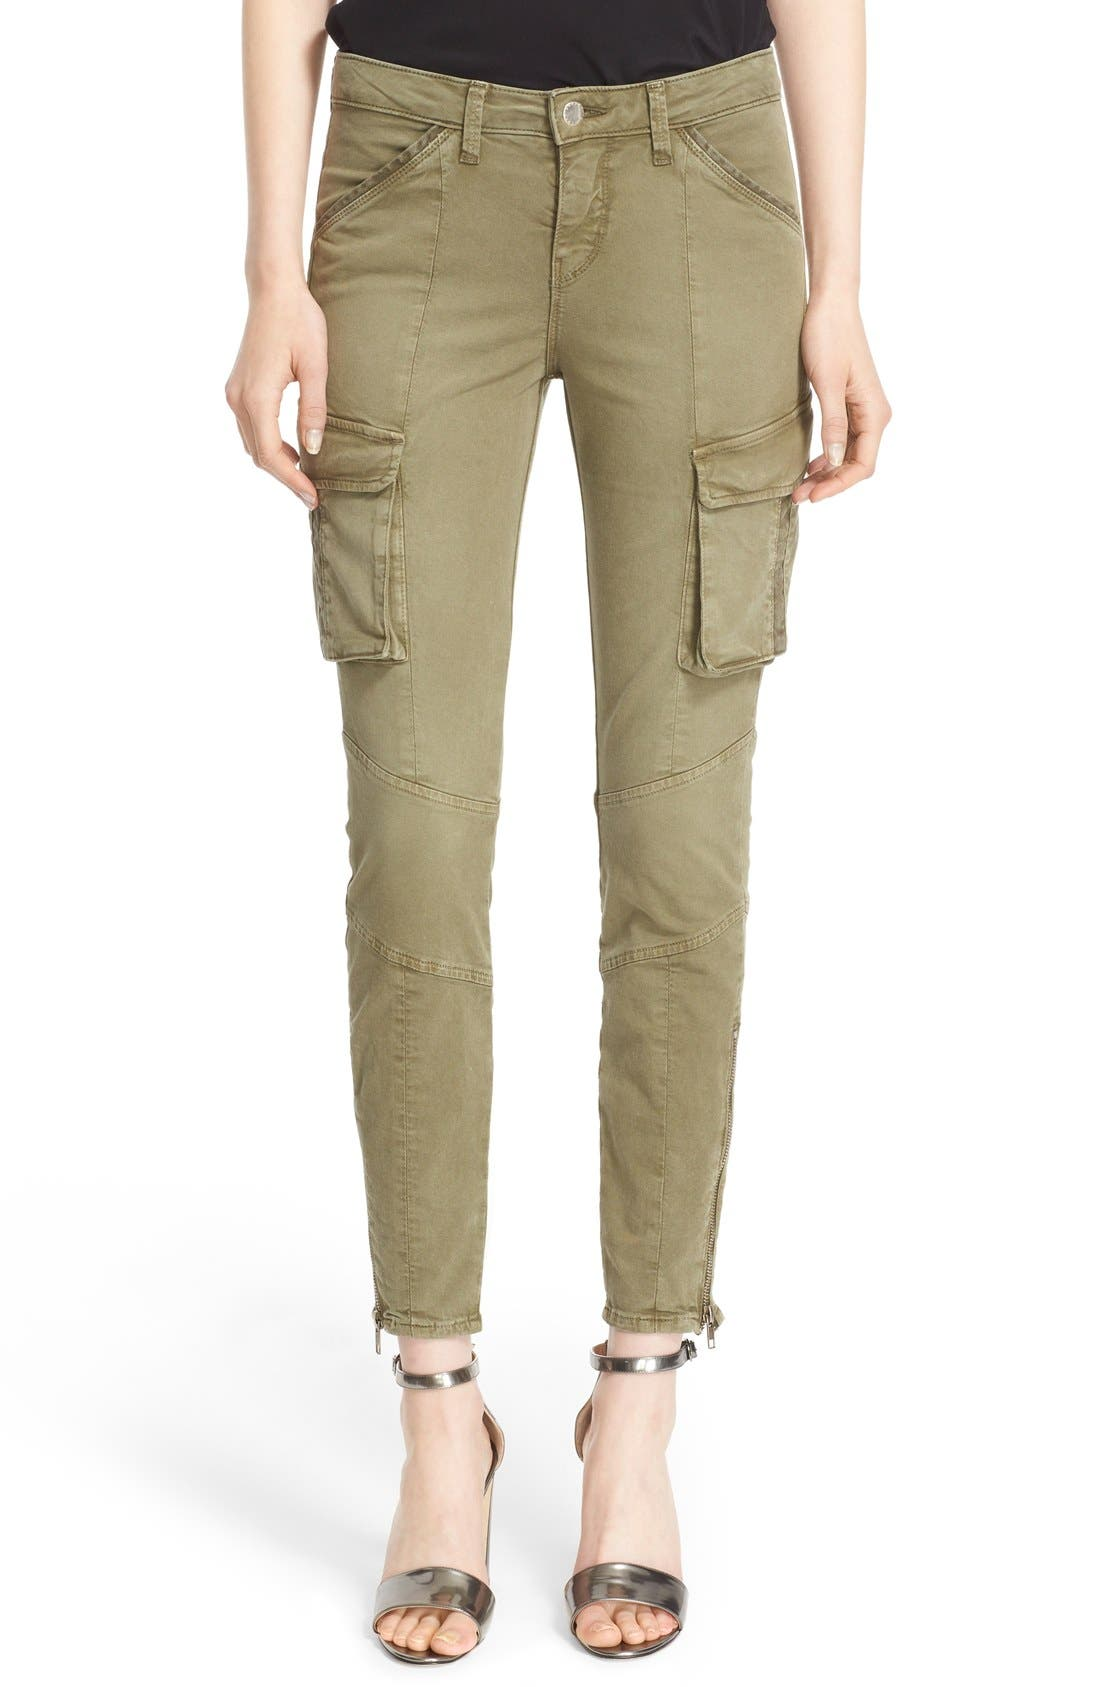 Alternate Image 1 Selected - L'AGENCE Skinny Cargo Pants